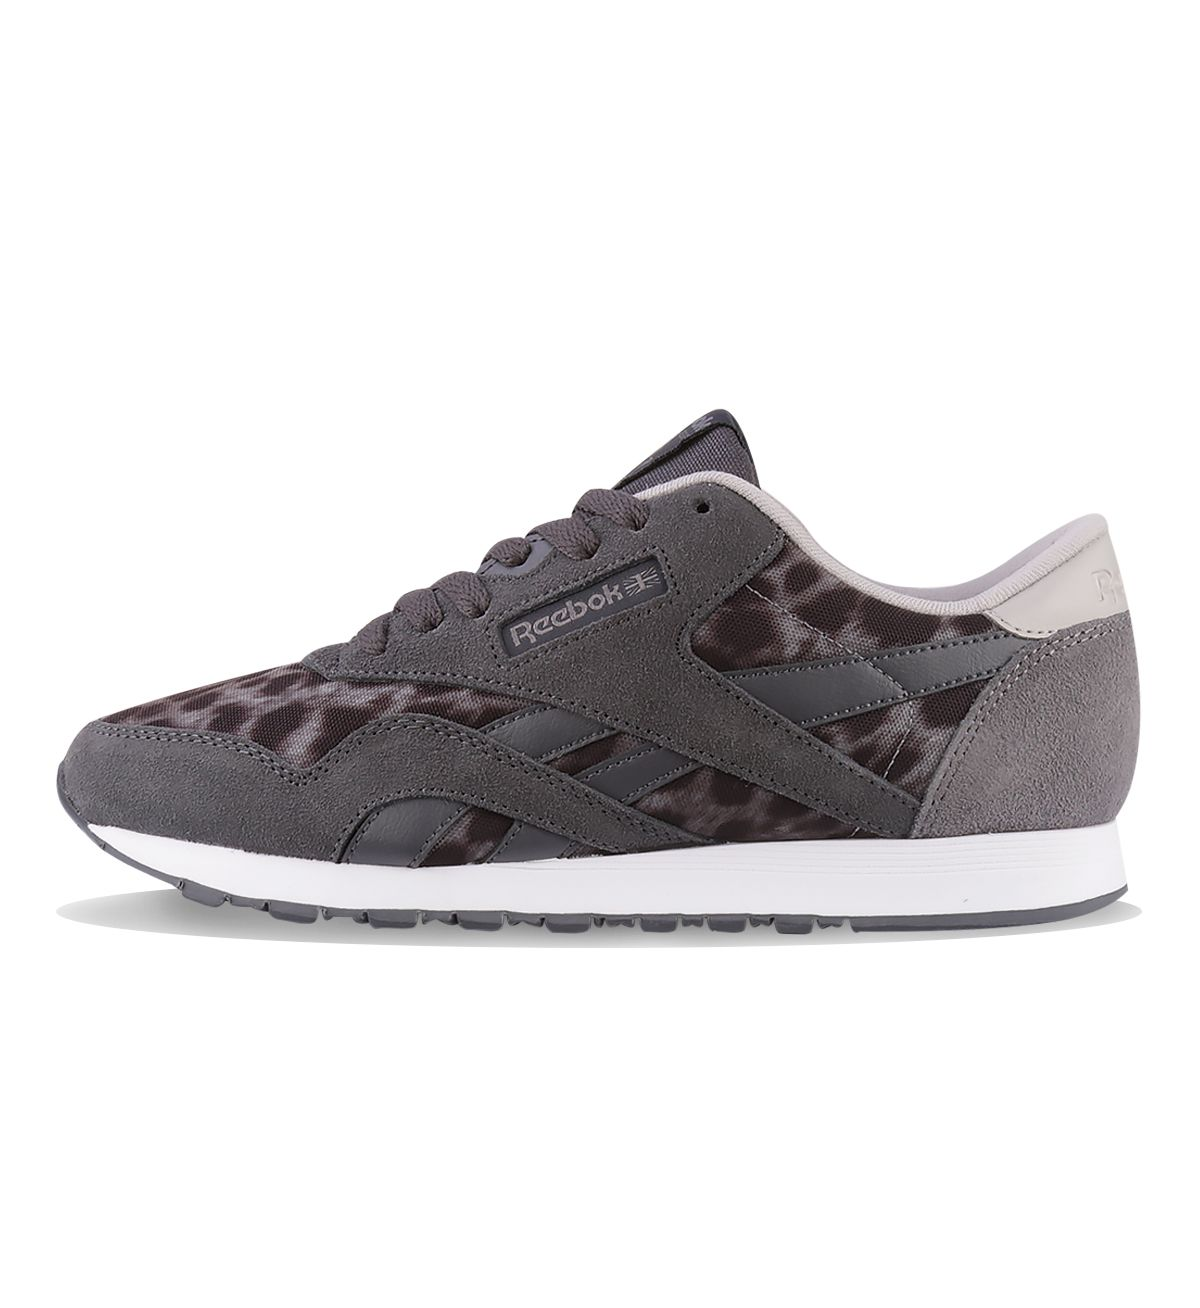 dfe0517d45cb Reebok WMNS CL Nylon Wild Shark   Black   Steel   White - Reebok Womens The  Women s Reebok Classic Nylon Wild in grey has nylon and suede uppers with  an ...